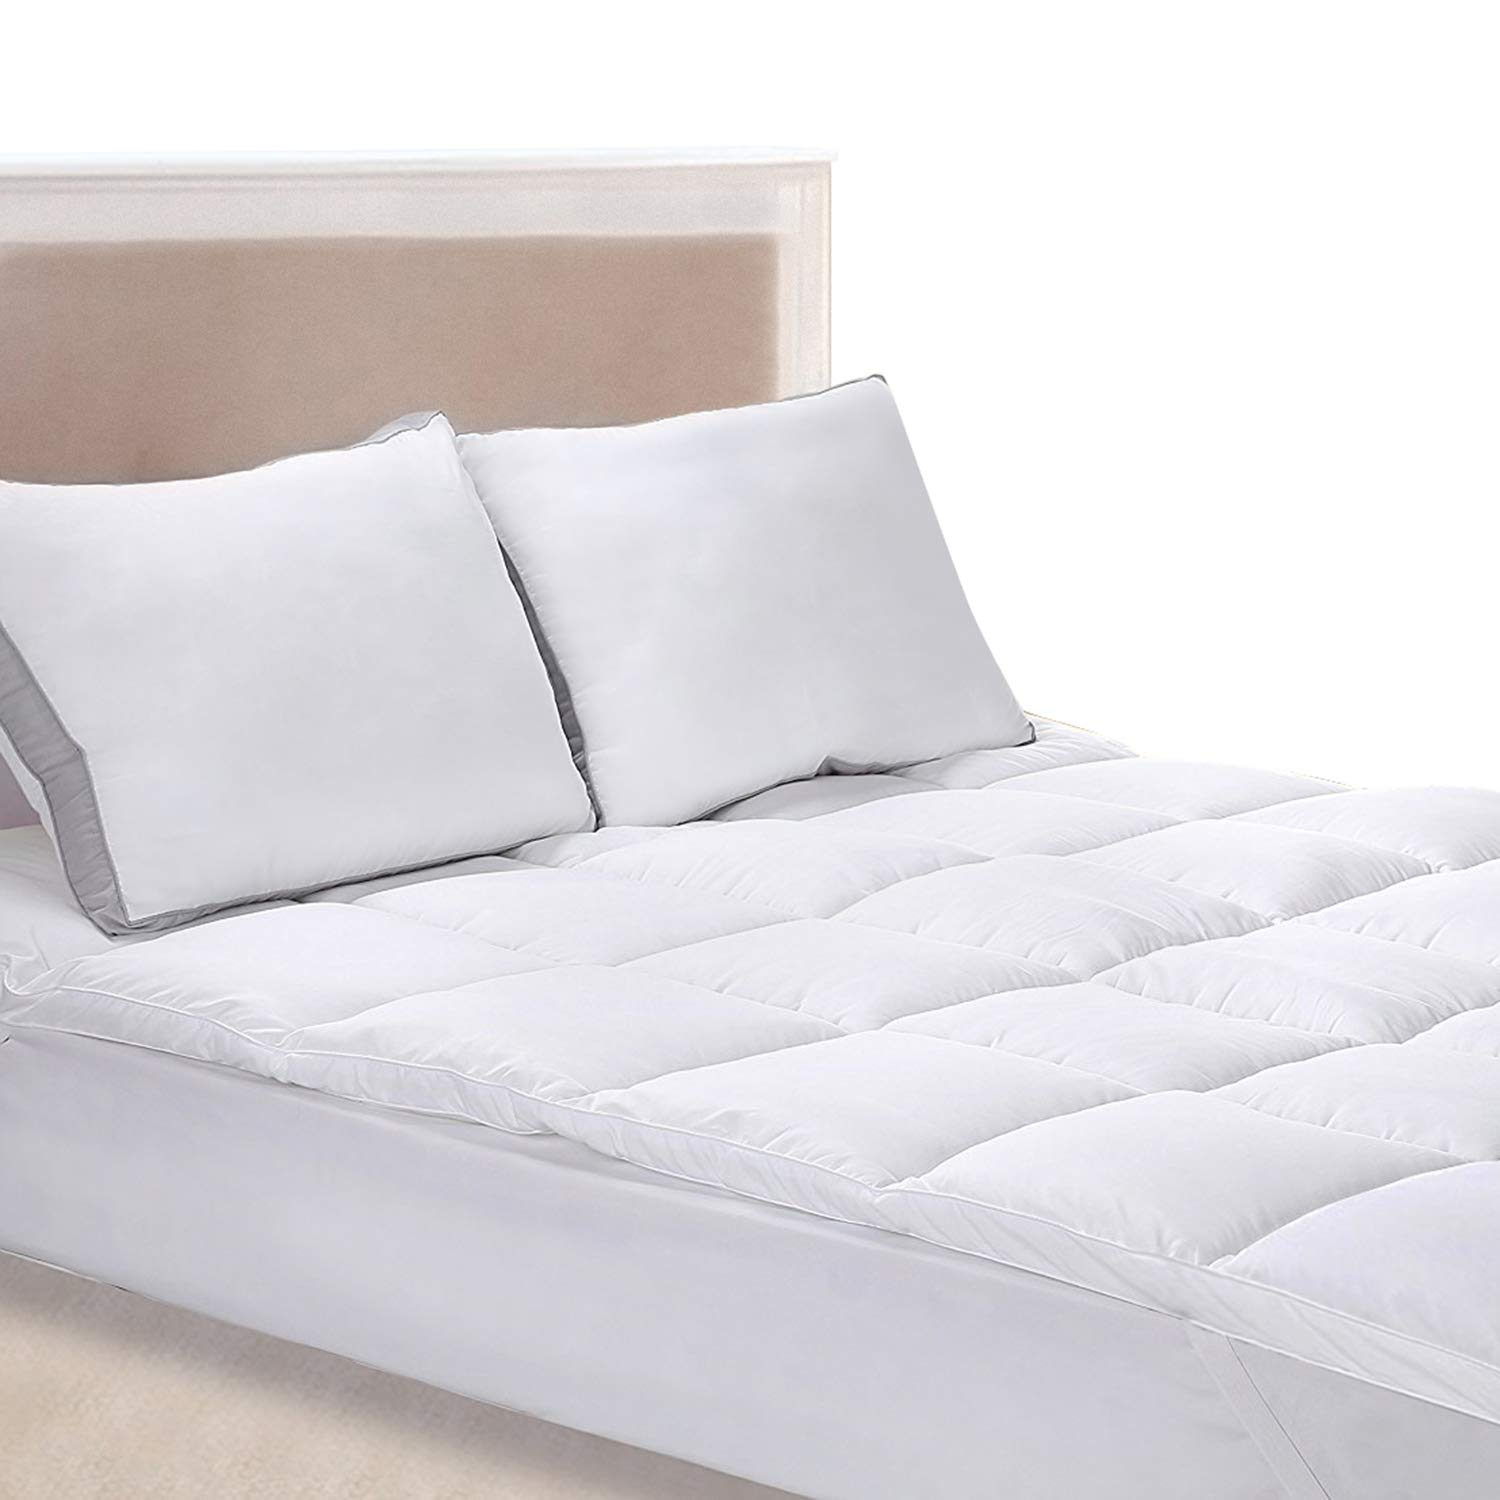 Utopia Bedding Polyester Mattress Topper (Twin XL) - Mattress Pad Cover Stretches Up to 15 Inches Deep - Mattress Protector with Siliconized Fiber Filling